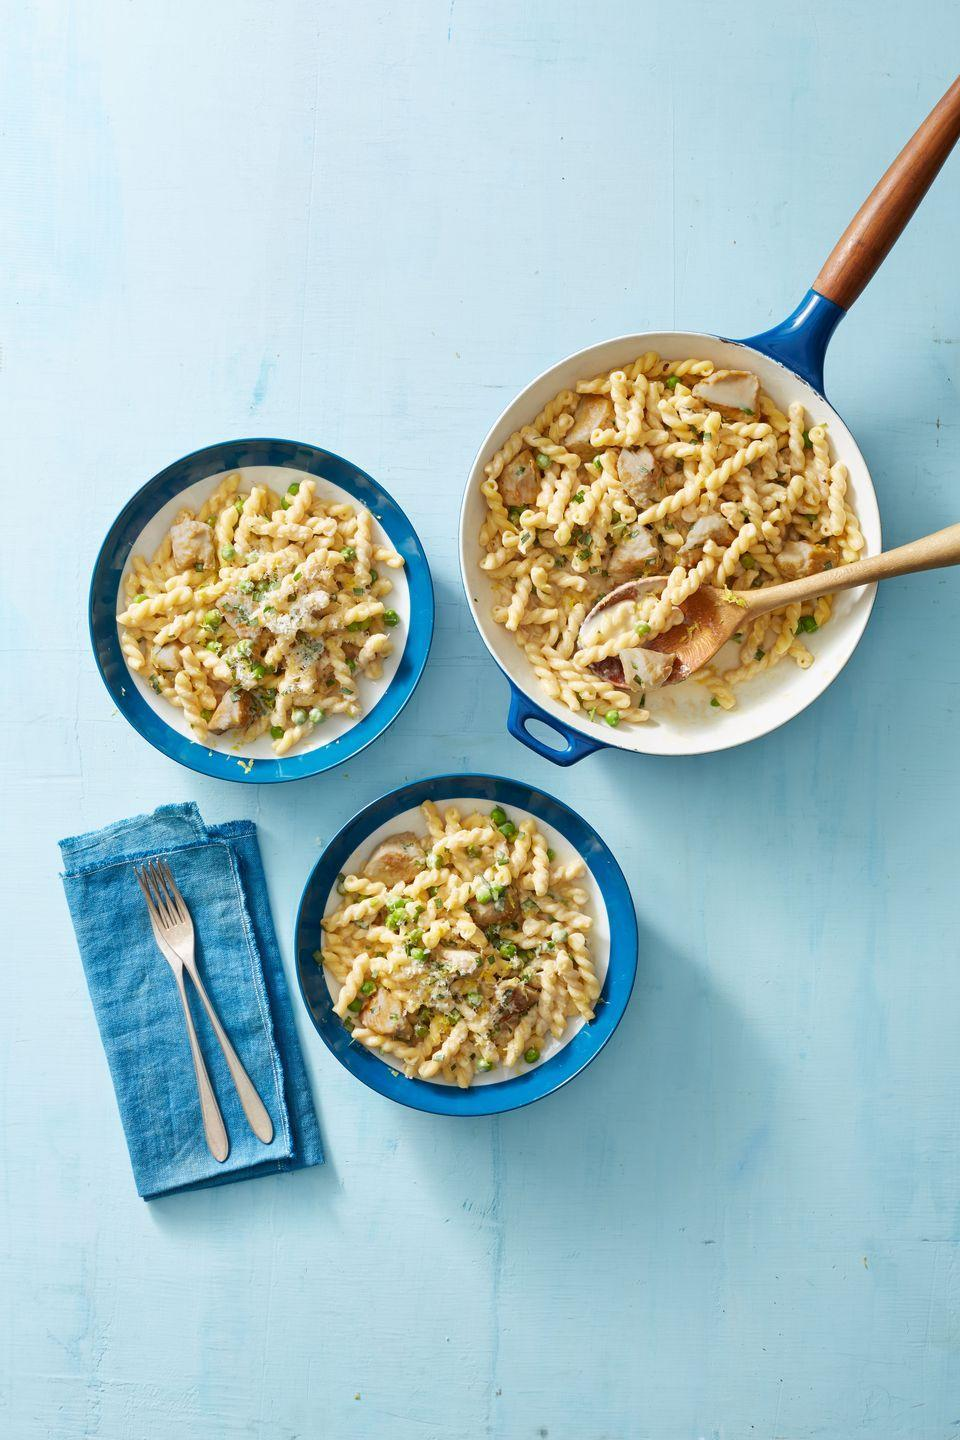 """<p>Craving mac and cheese without the nutritional blowback? This creamy dish tastes just as delightful, with each bowl packing in 40+ of protein in one sitting.</p><p><em><a href=""""https://www.goodhousekeeping.com/food-recipes/easy/a22729558/creamy-lemon-pasta-with-chicken-and-peas-recipe/"""" rel=""""nofollow noopener"""" target=""""_blank"""" data-ylk=""""slk:Get the recipe for Creamy Lemon Pasta with Chicken and Peas »"""" class=""""link rapid-noclick-resp"""">Get the recipe for Creamy Lemon Pasta with Chicken and Peas »</a></em></p>"""